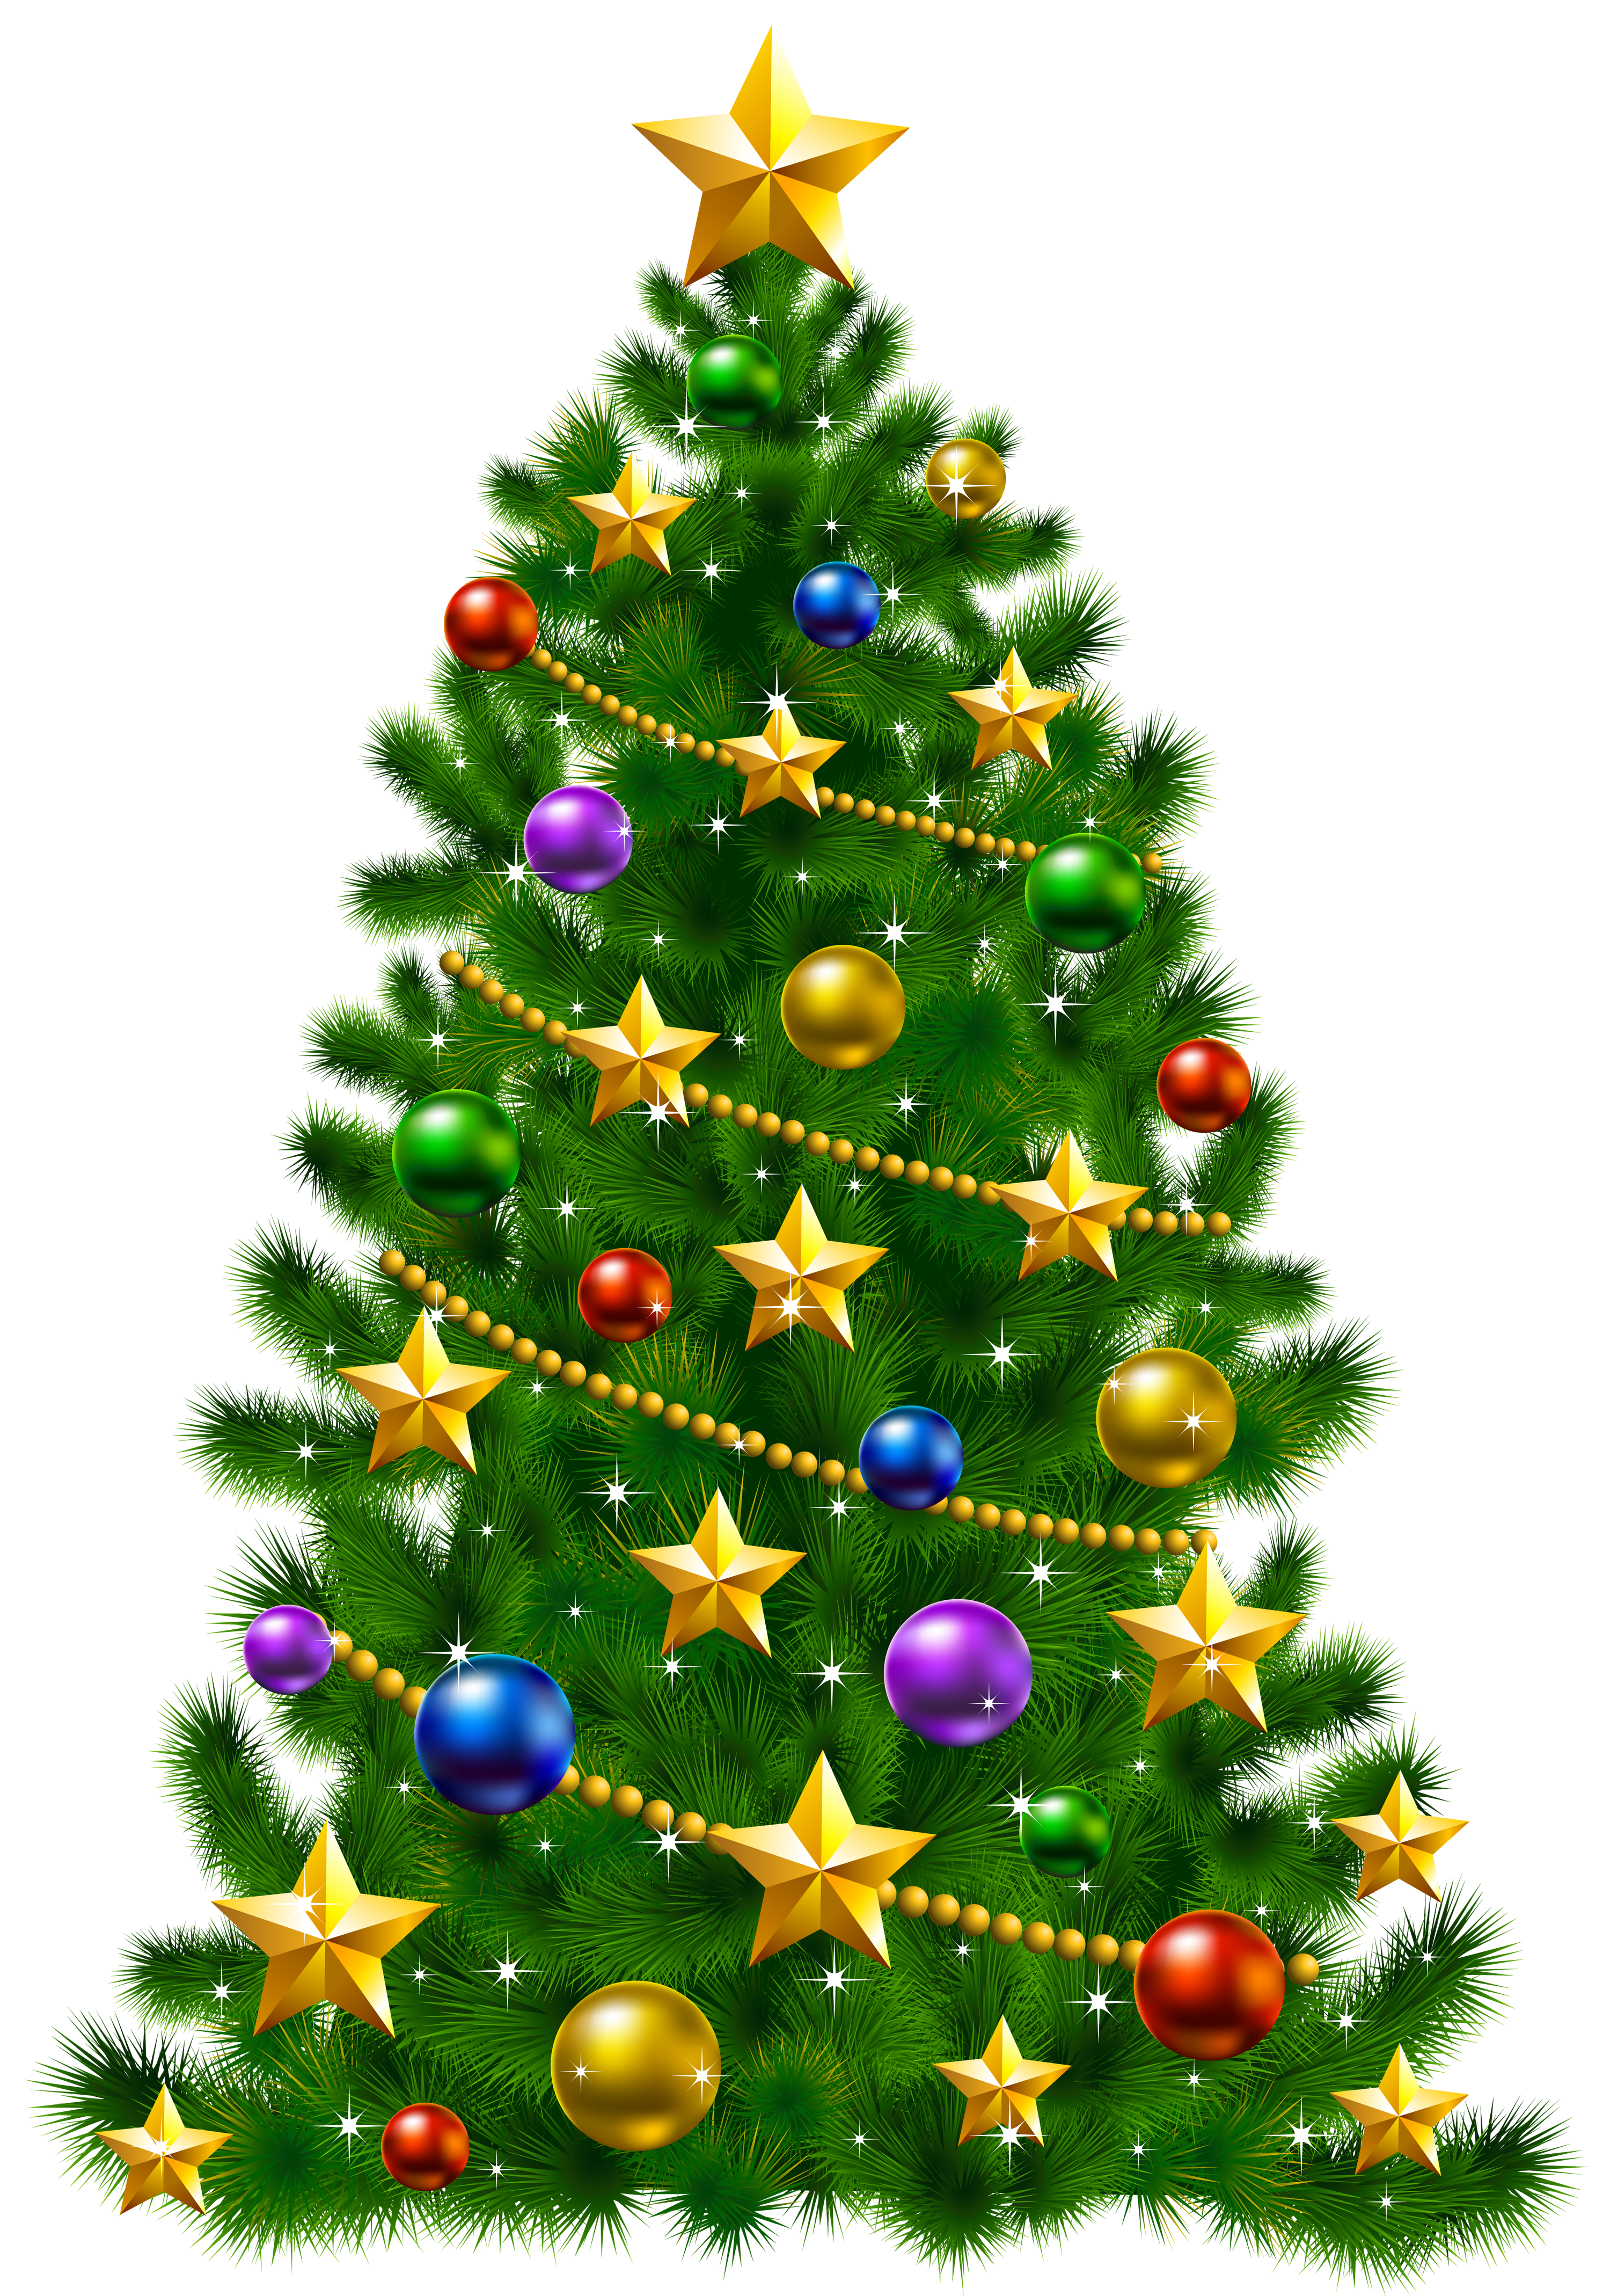 Transparent Christmas Tree with Stars PNG Clipart.